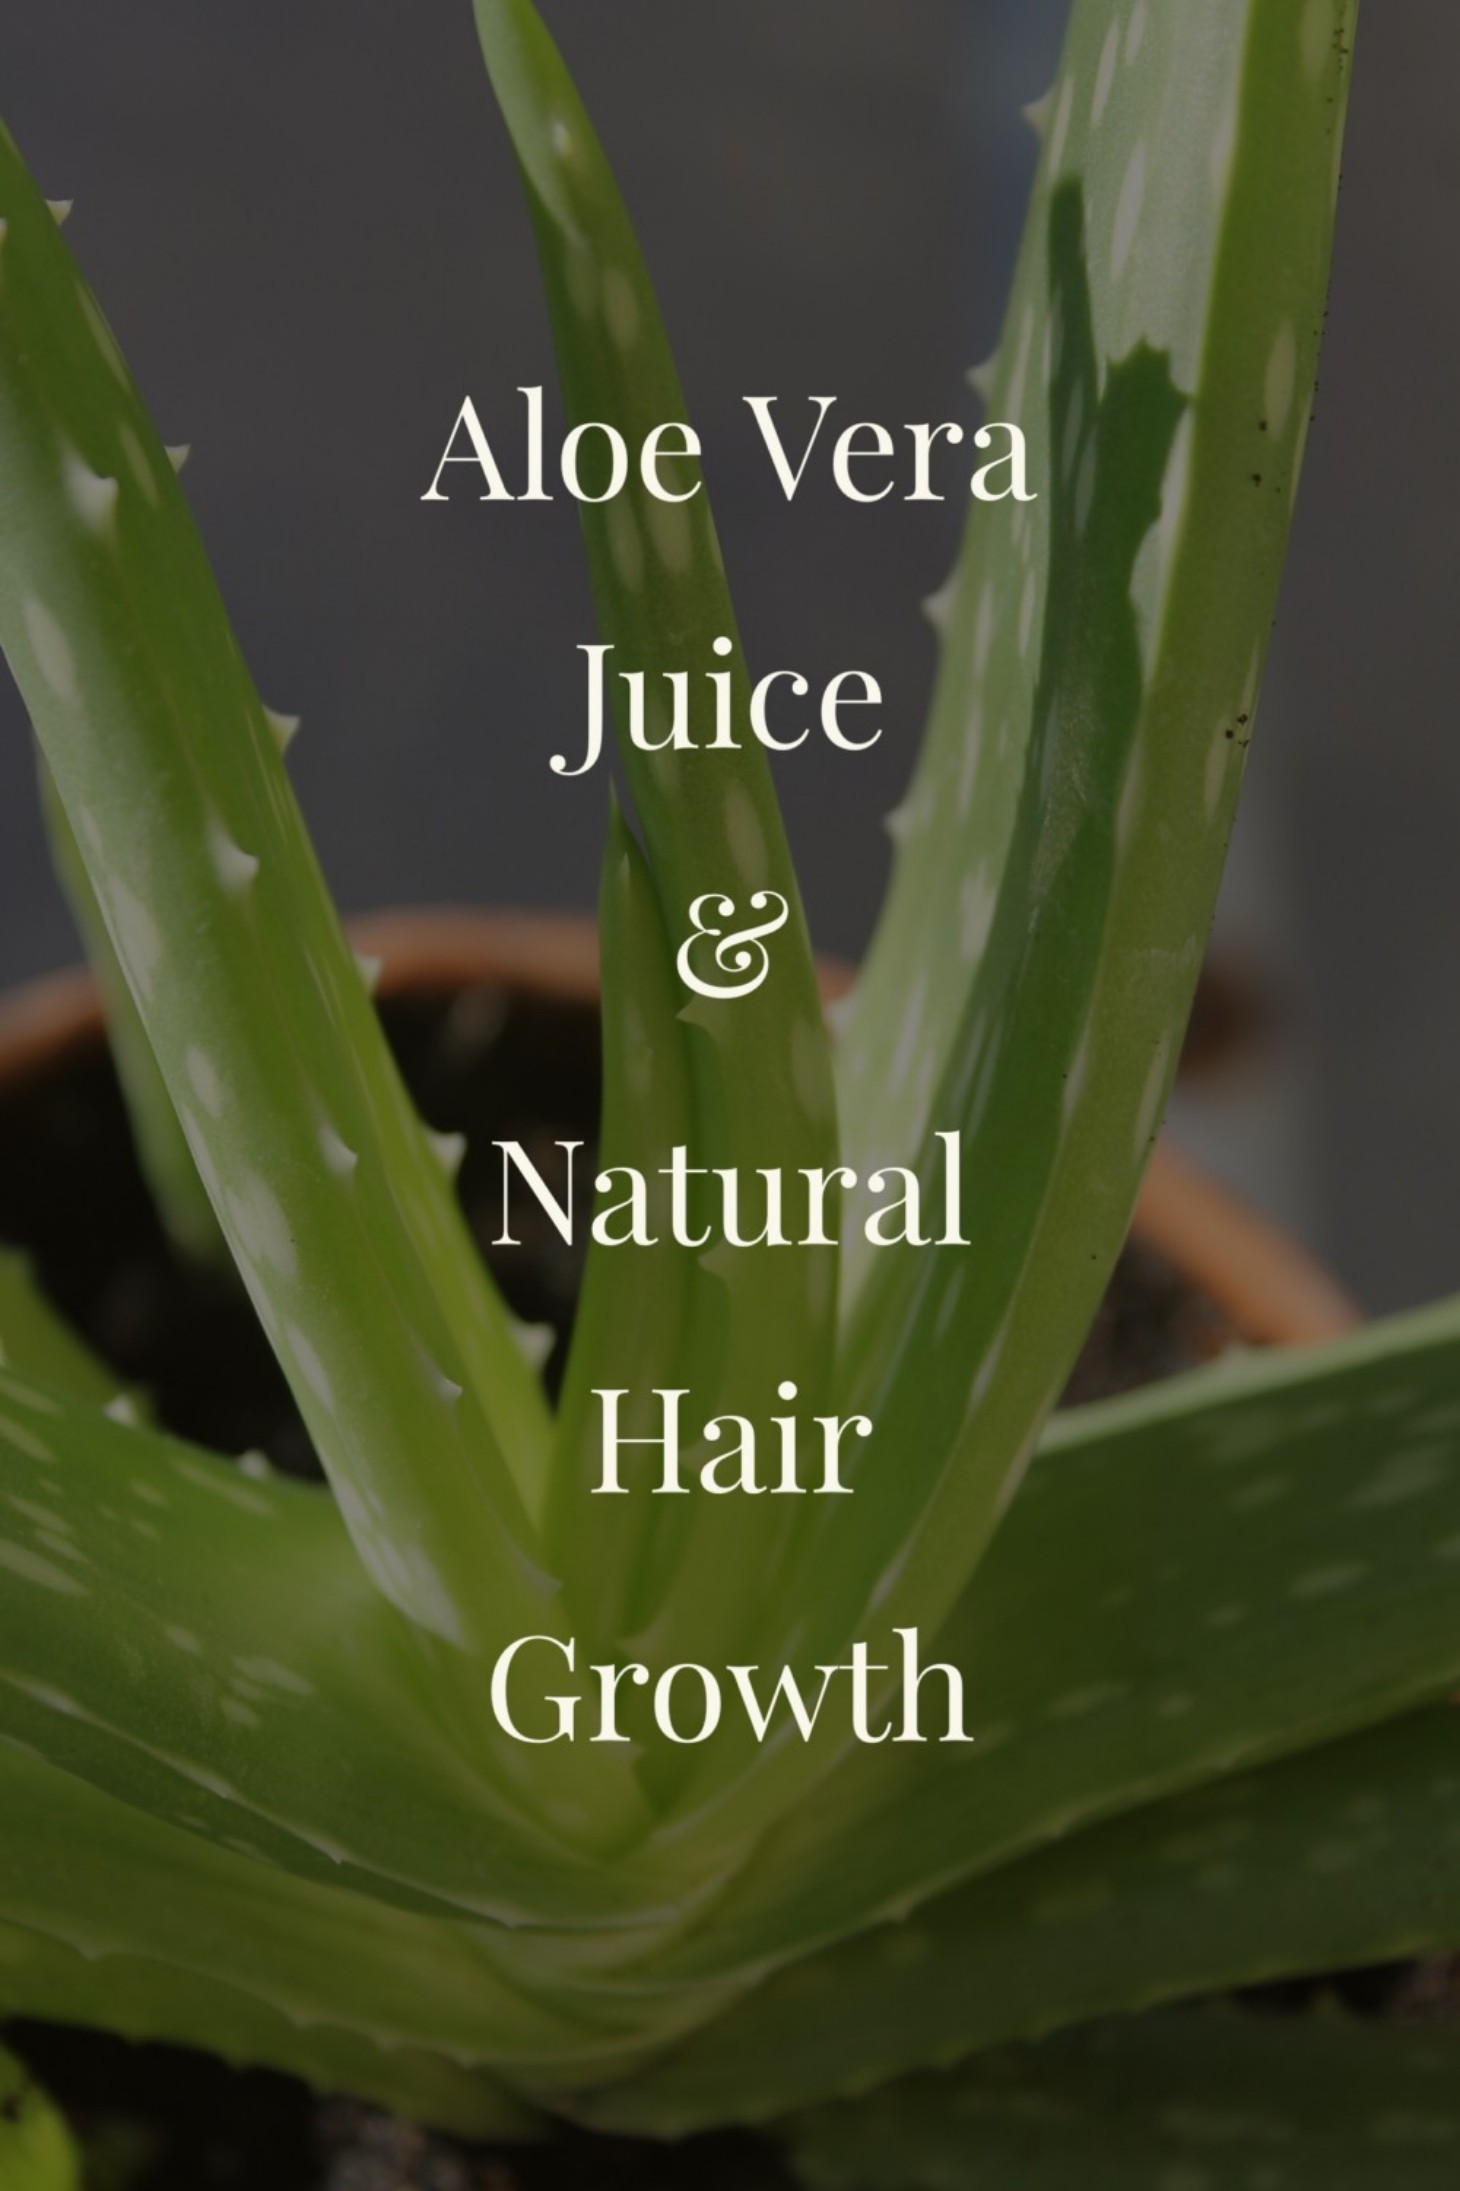 Aloe Vera Juice And Natural Hair Growth Curly Chic